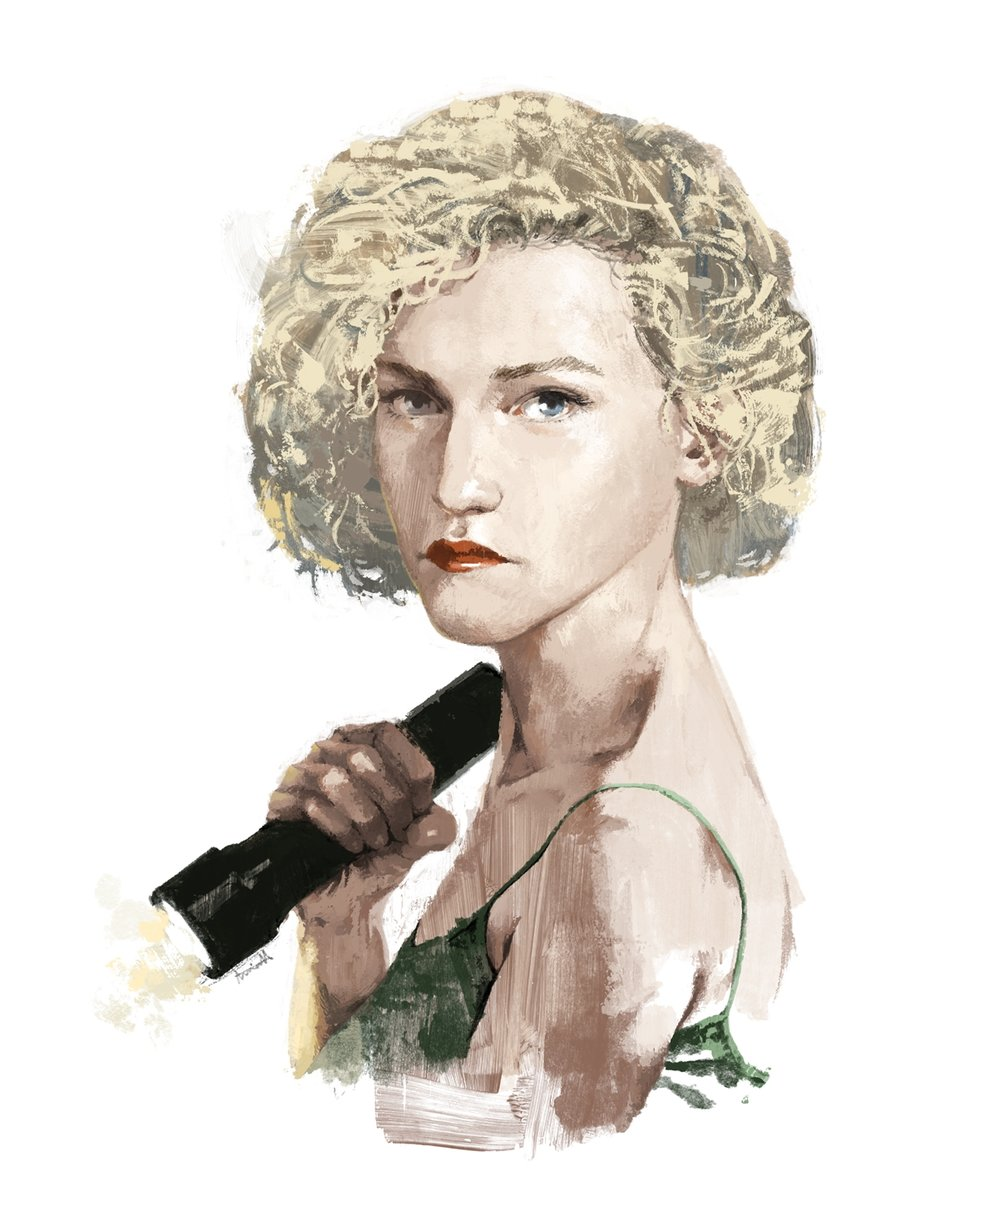 Ruth from Ozark, played by Julia Garner portrait by Marc Aspinall